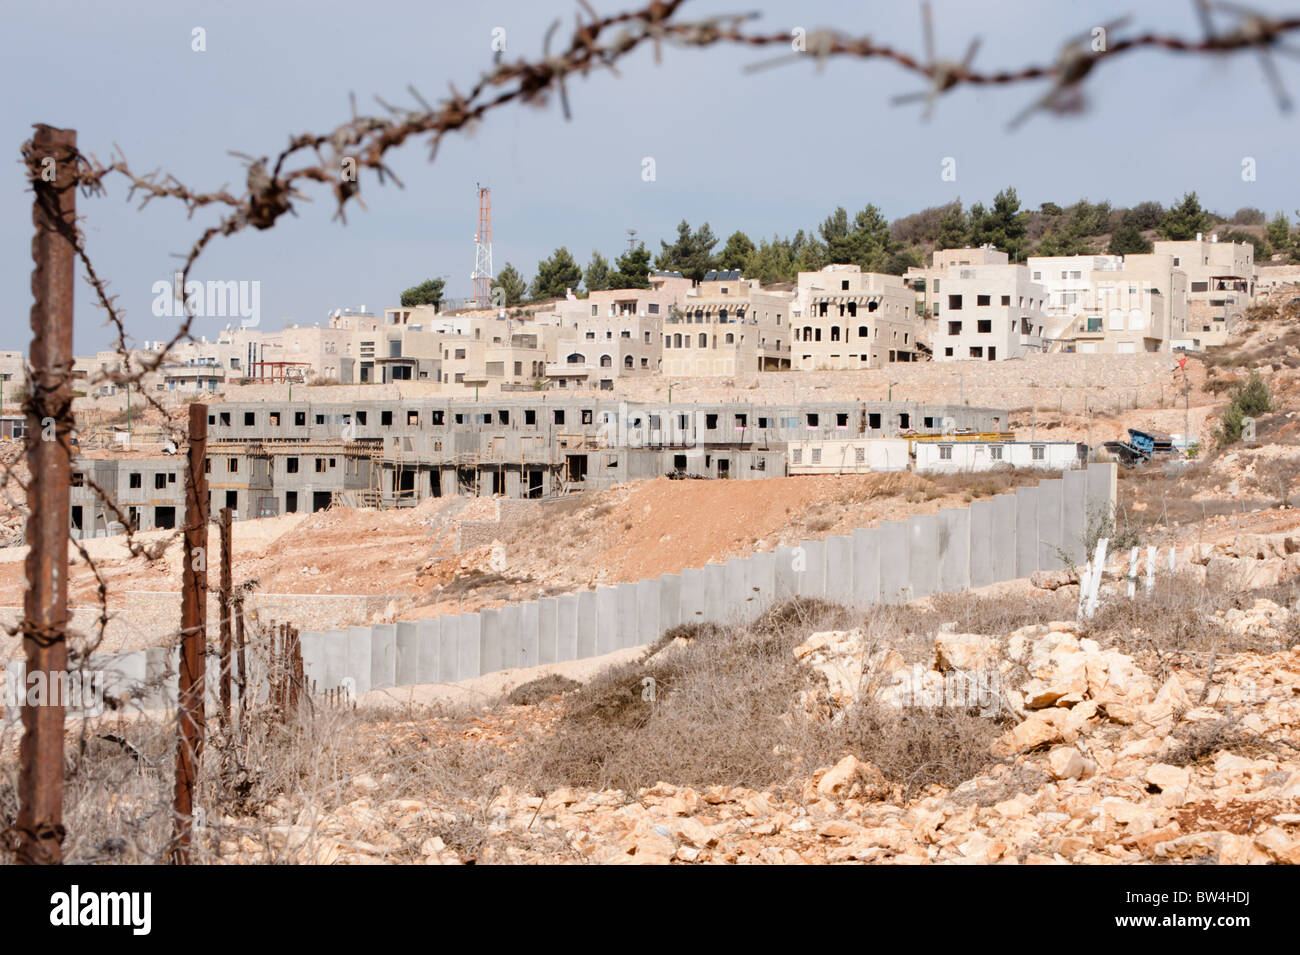 Construction continues on the Israeli settlement Gilo and the separation barrier surrounding it. - Stock Image